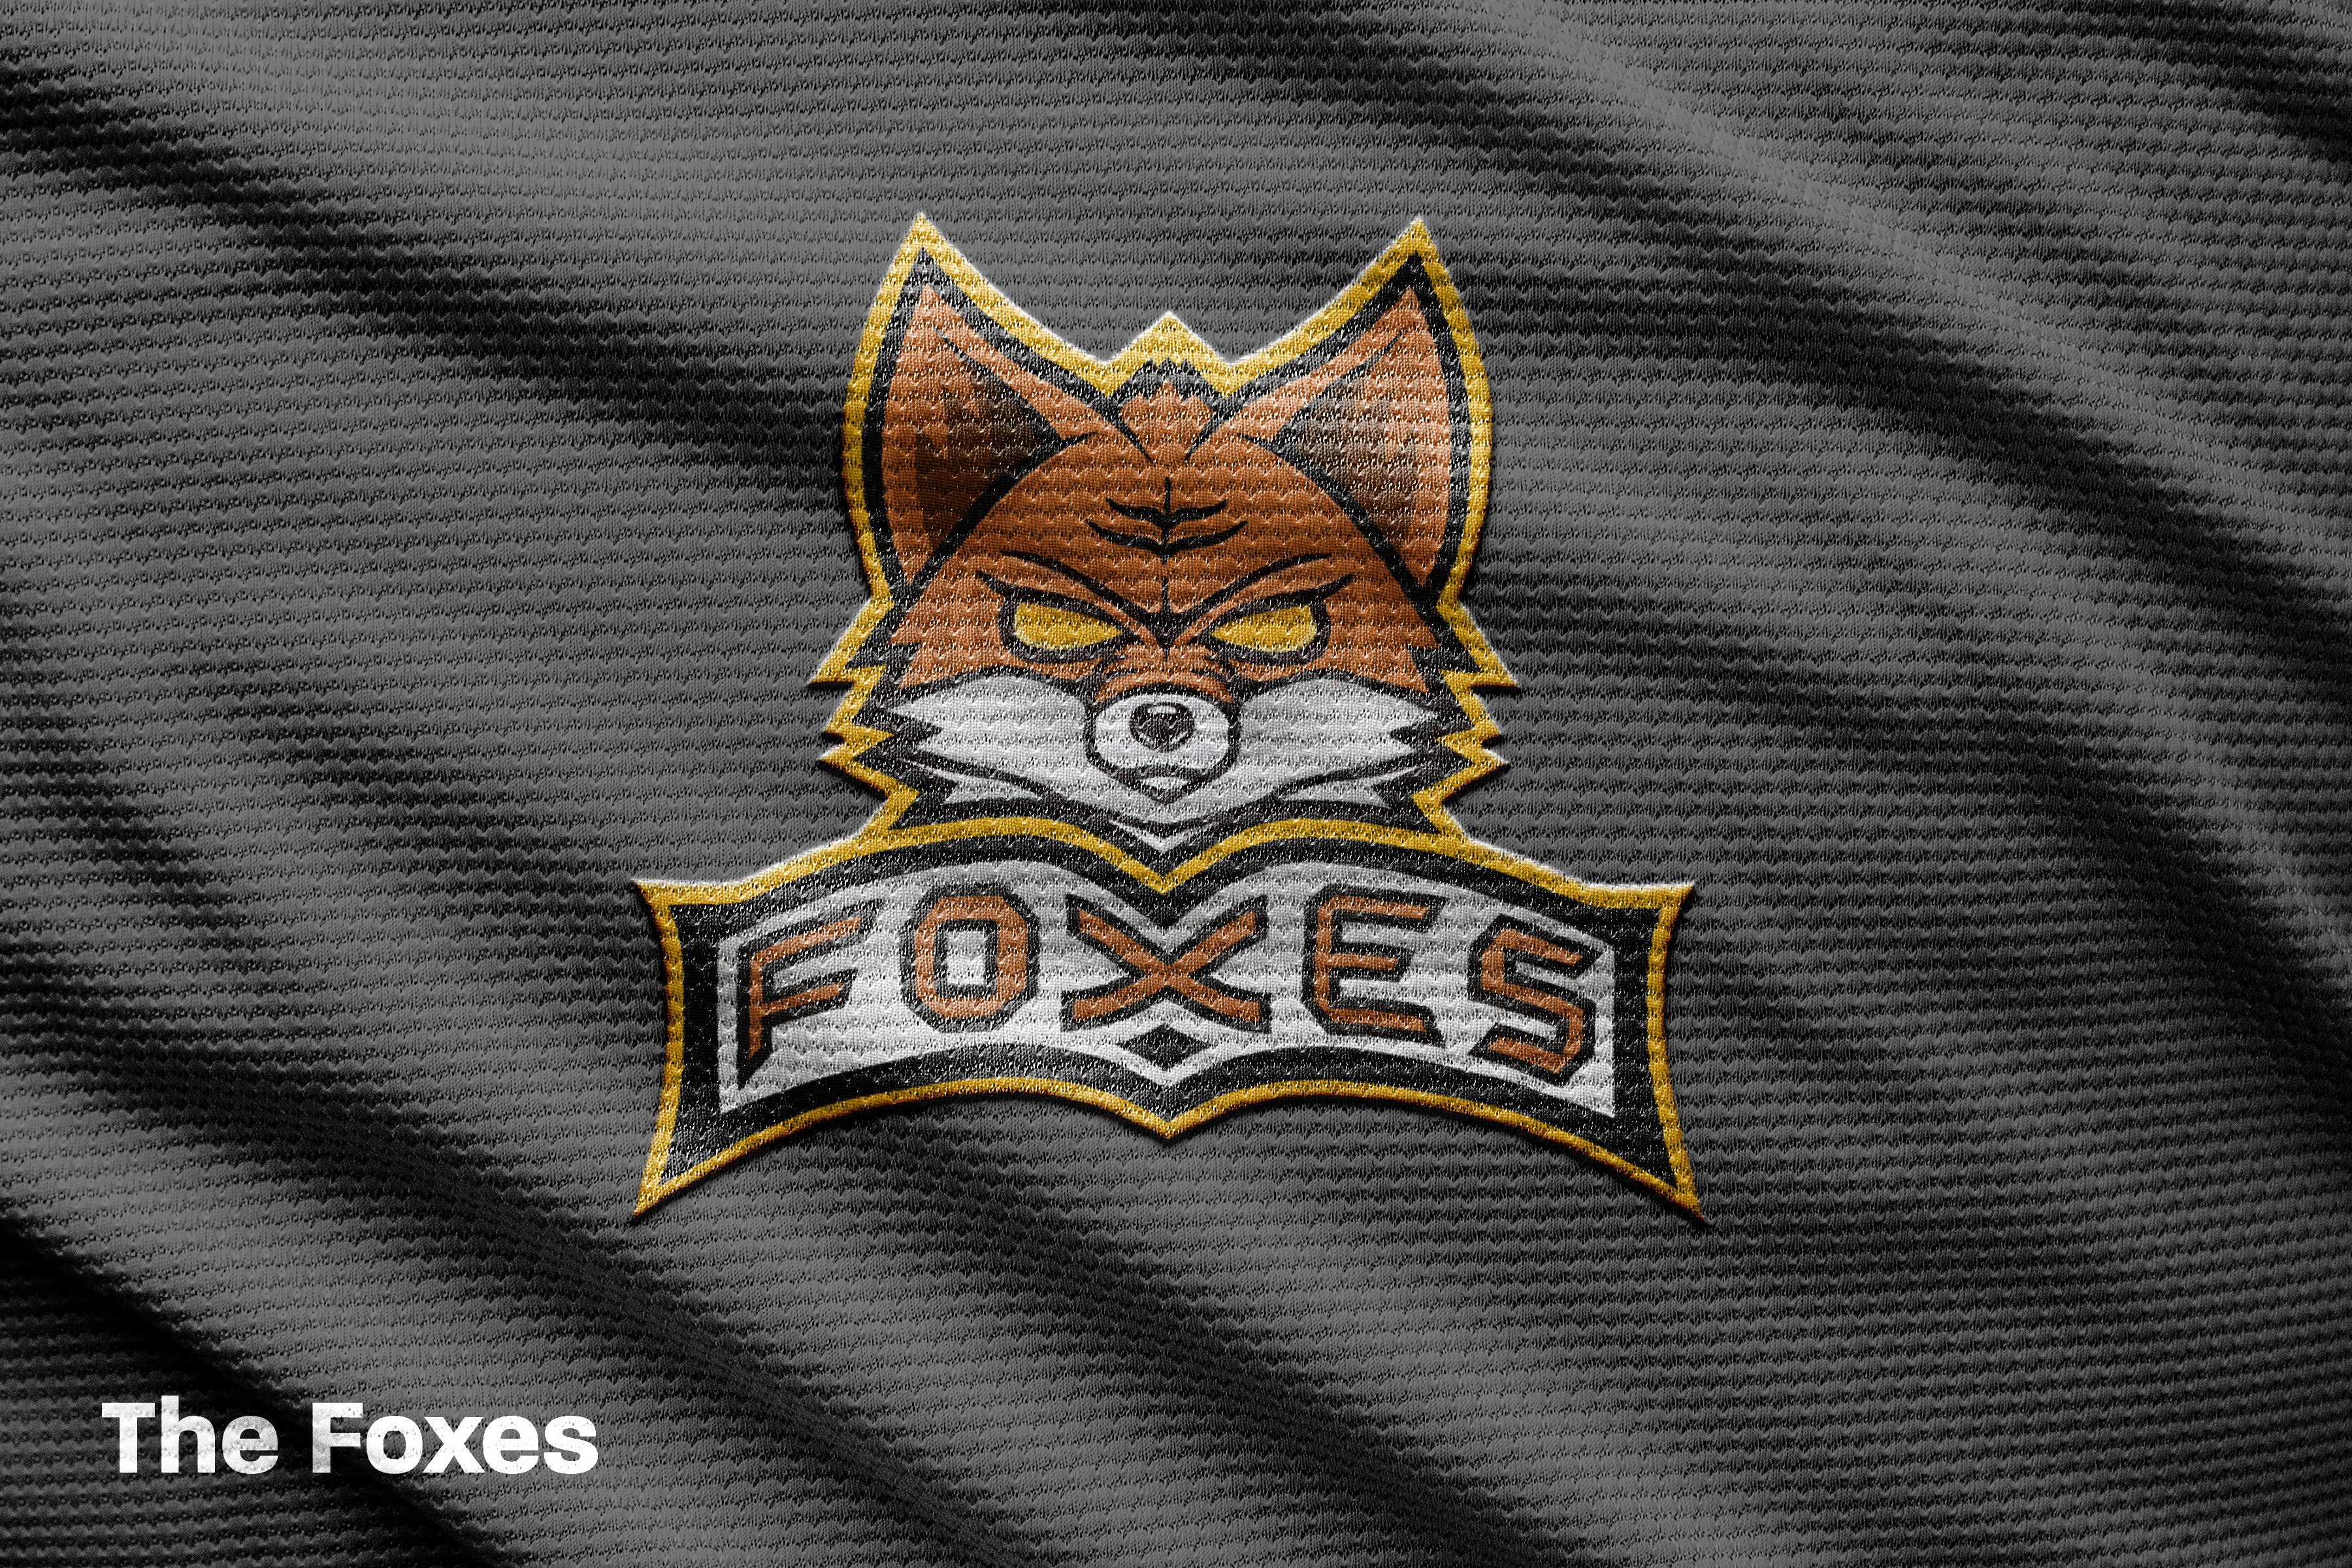 Foxes mock up